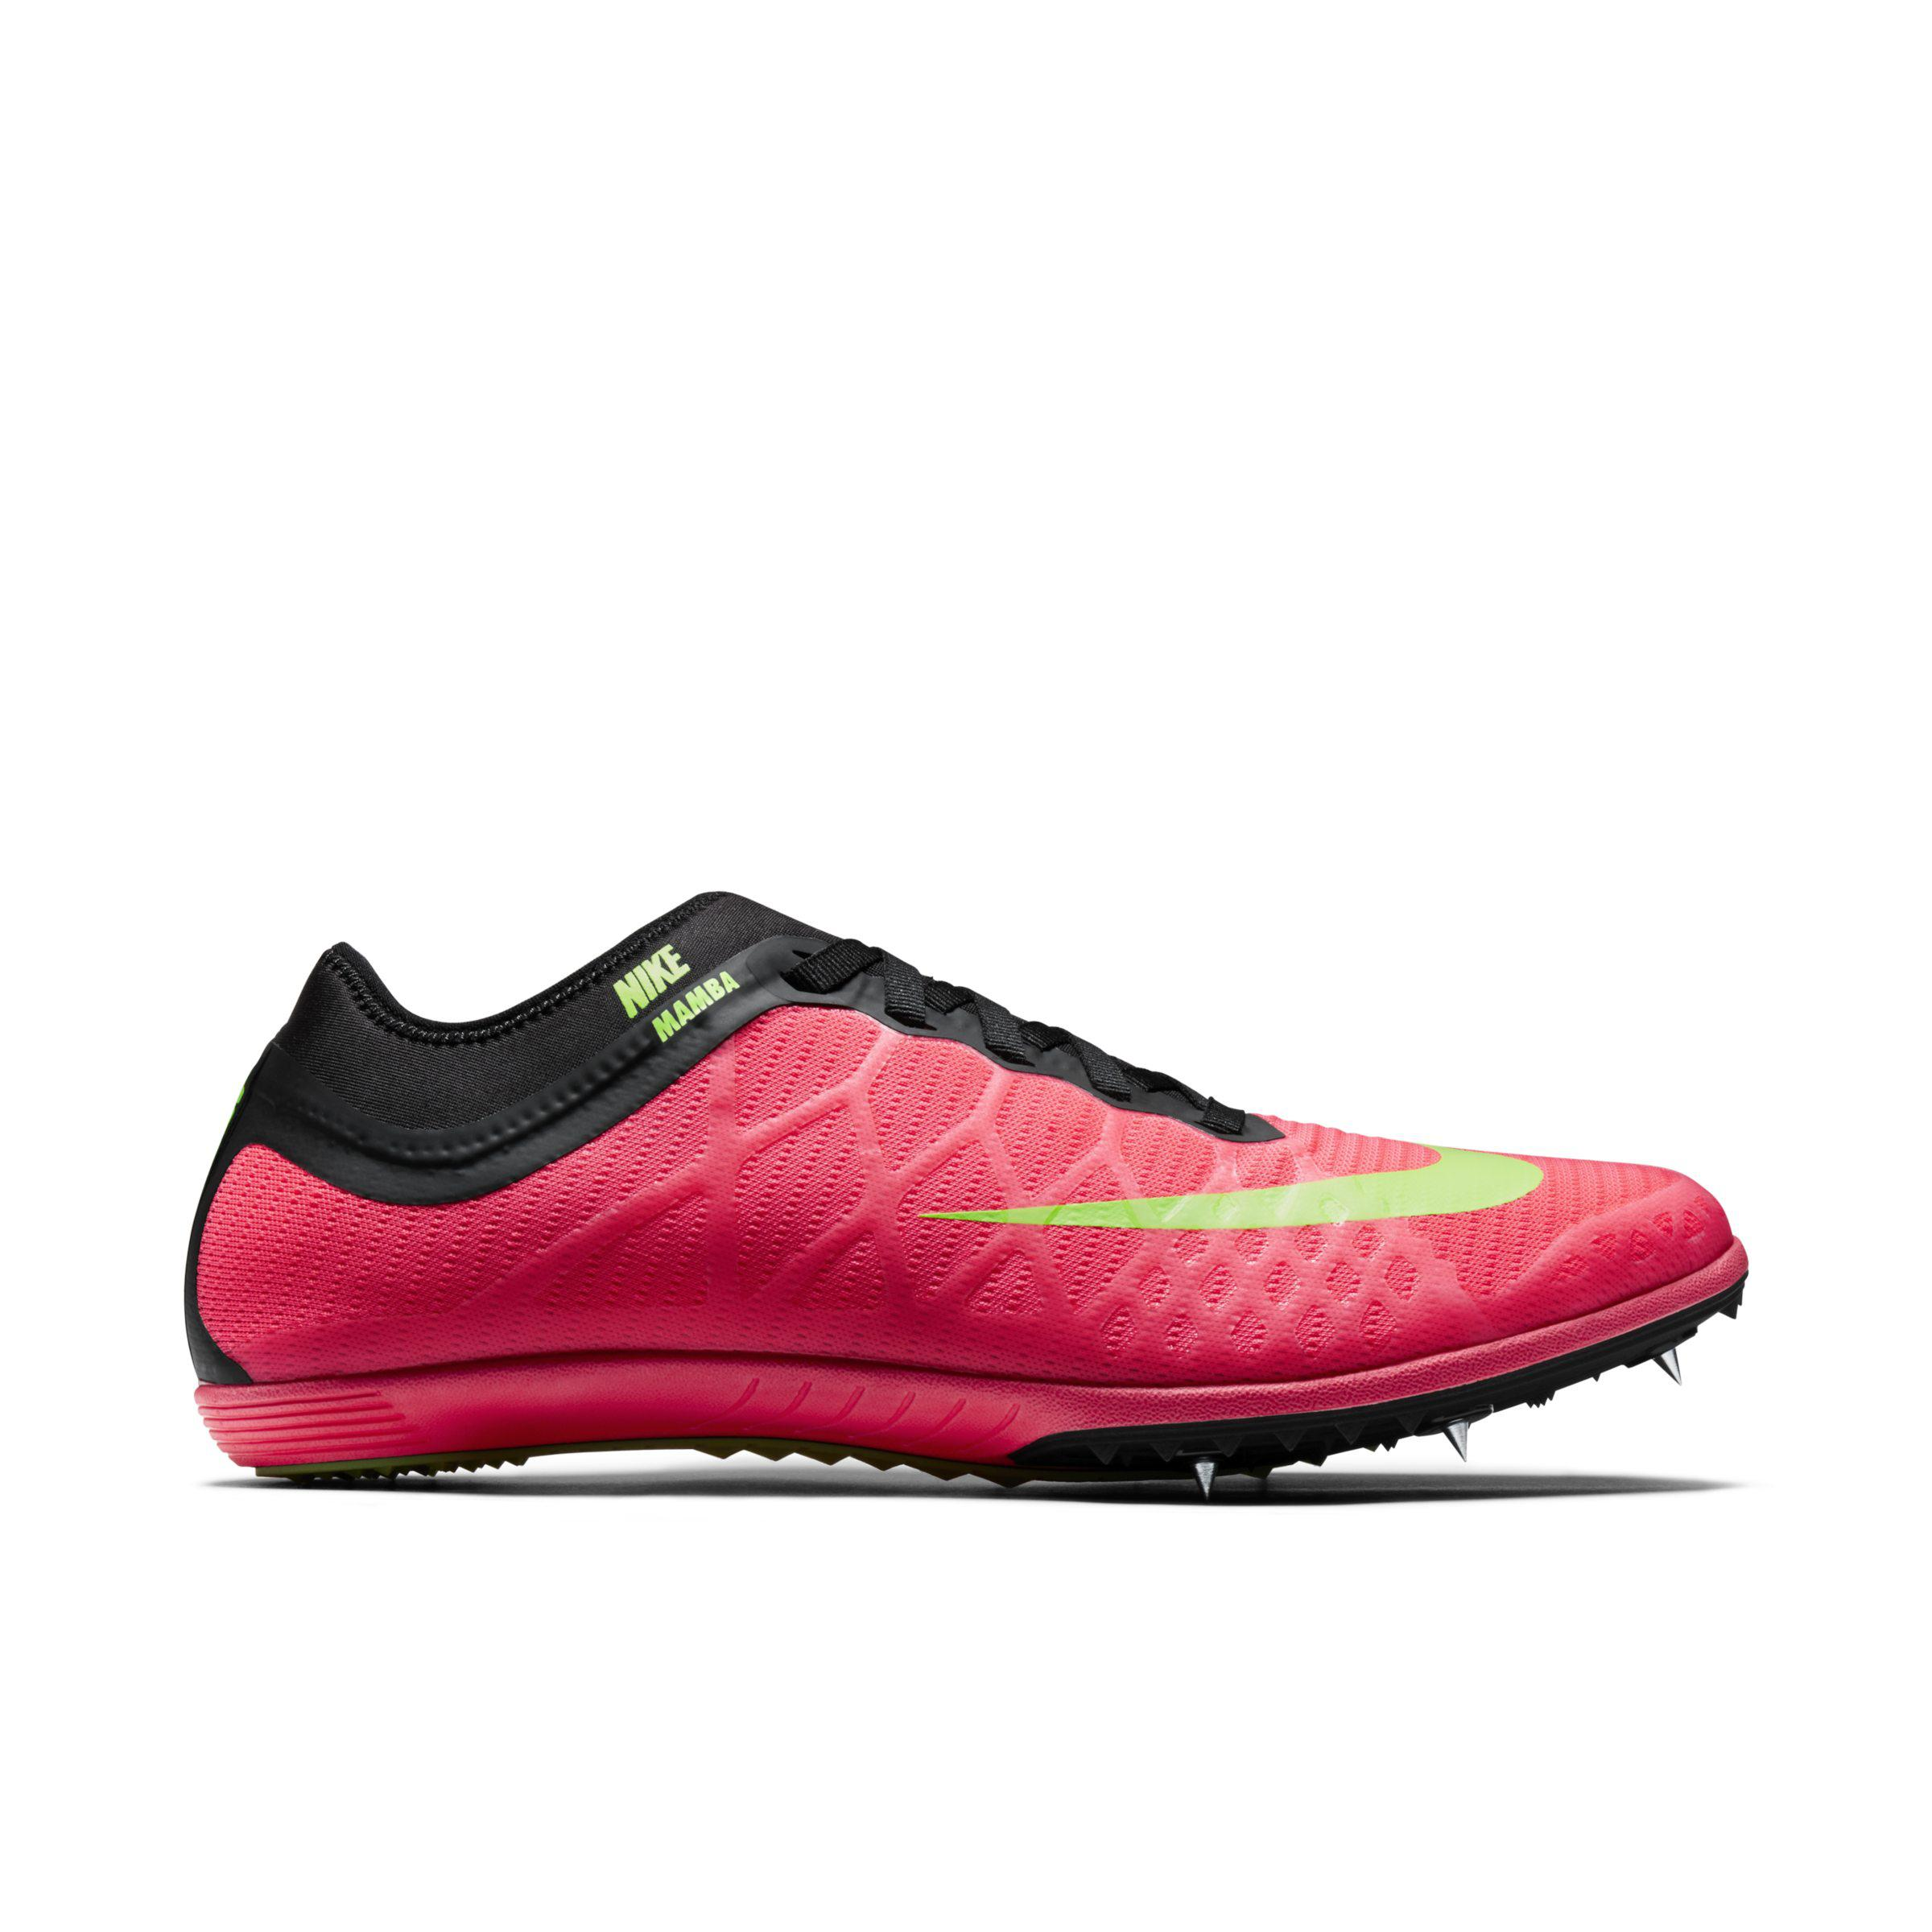 low priced ca883 8d8d8 Nike Zoom Mamba 3 Unisex Distance Spike In Pink Lyst